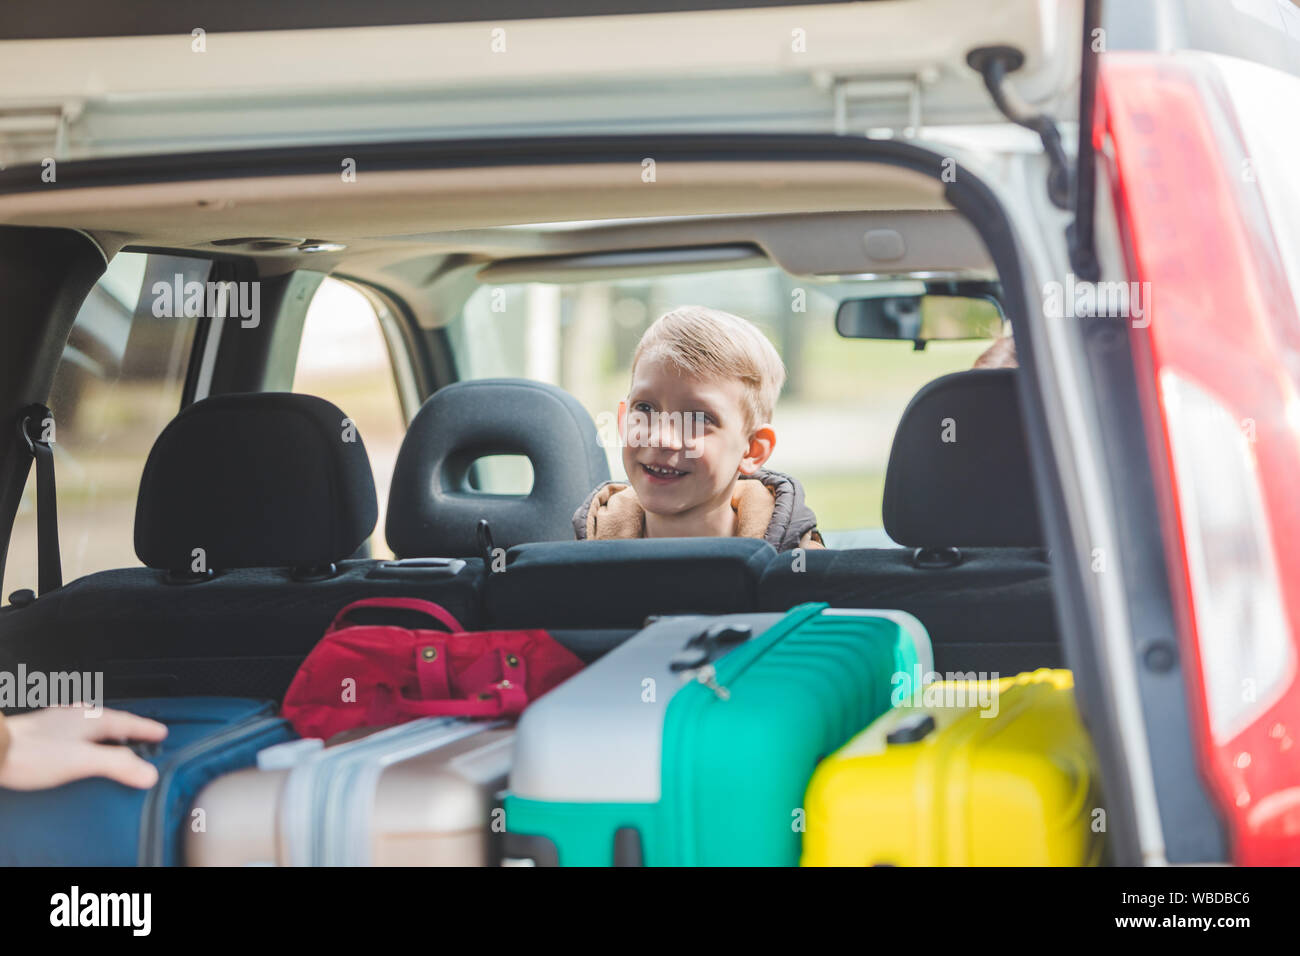 smiling little boy sitting in car waiting for car travel. bags in car trunk Stock Photo